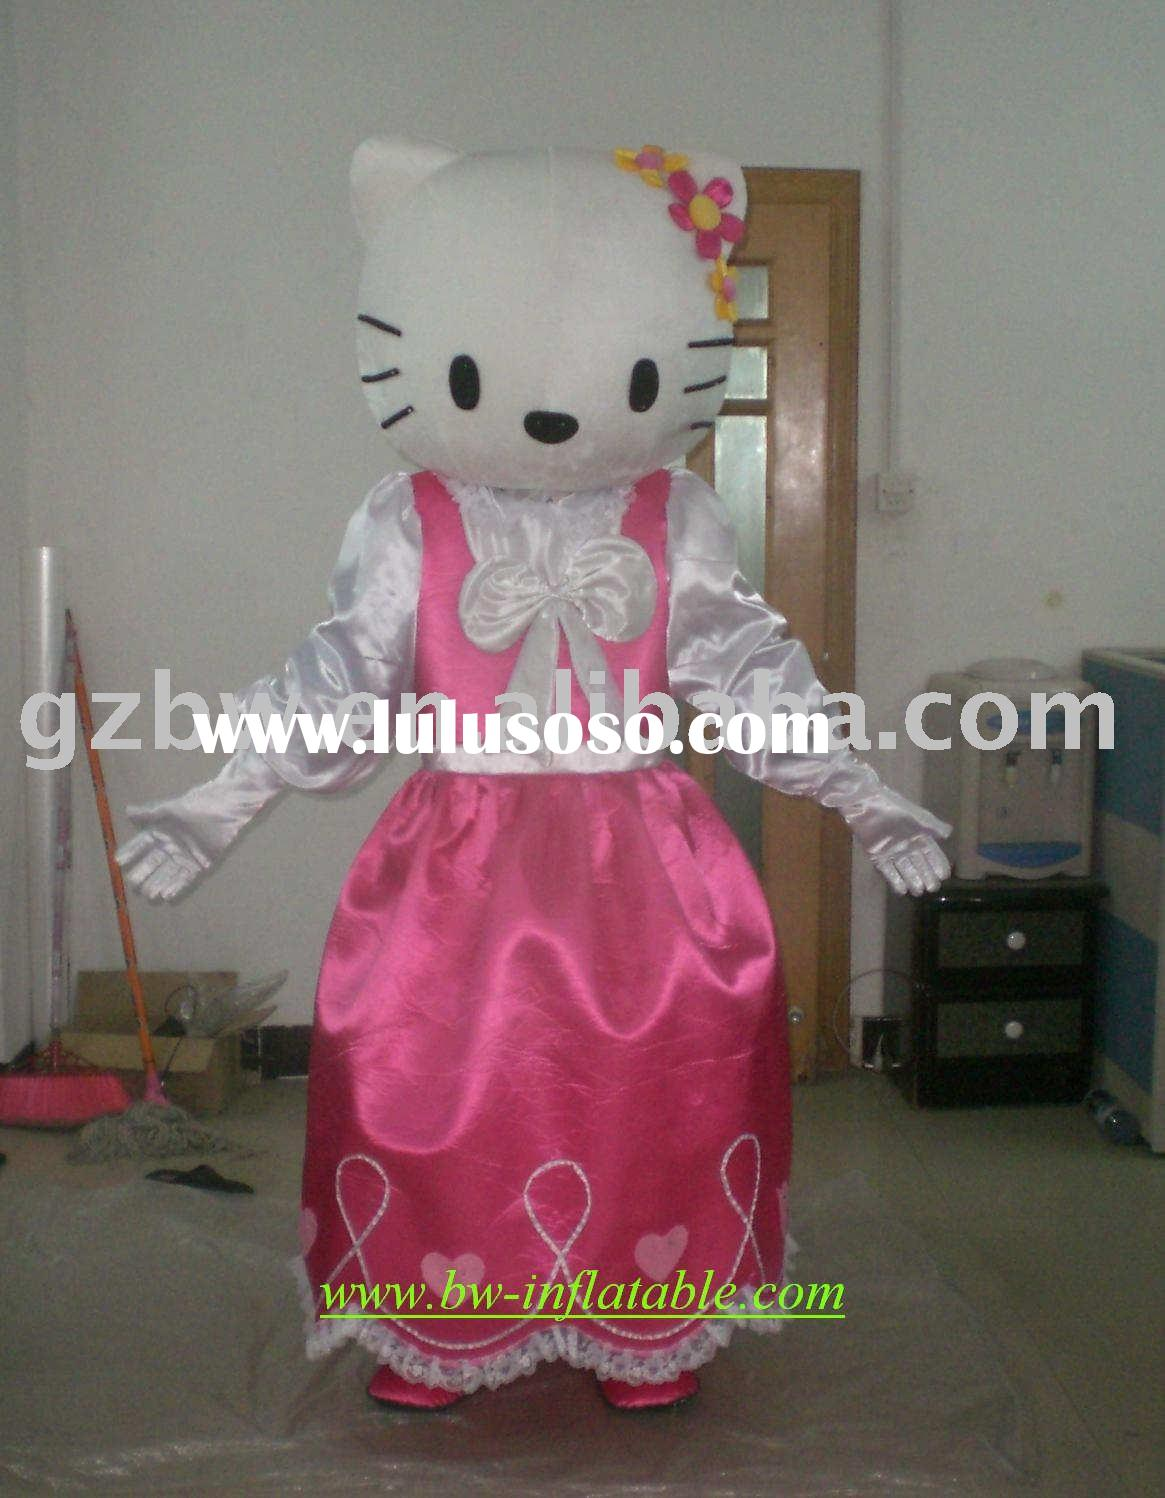 2010 BW hello kitty mascot costume